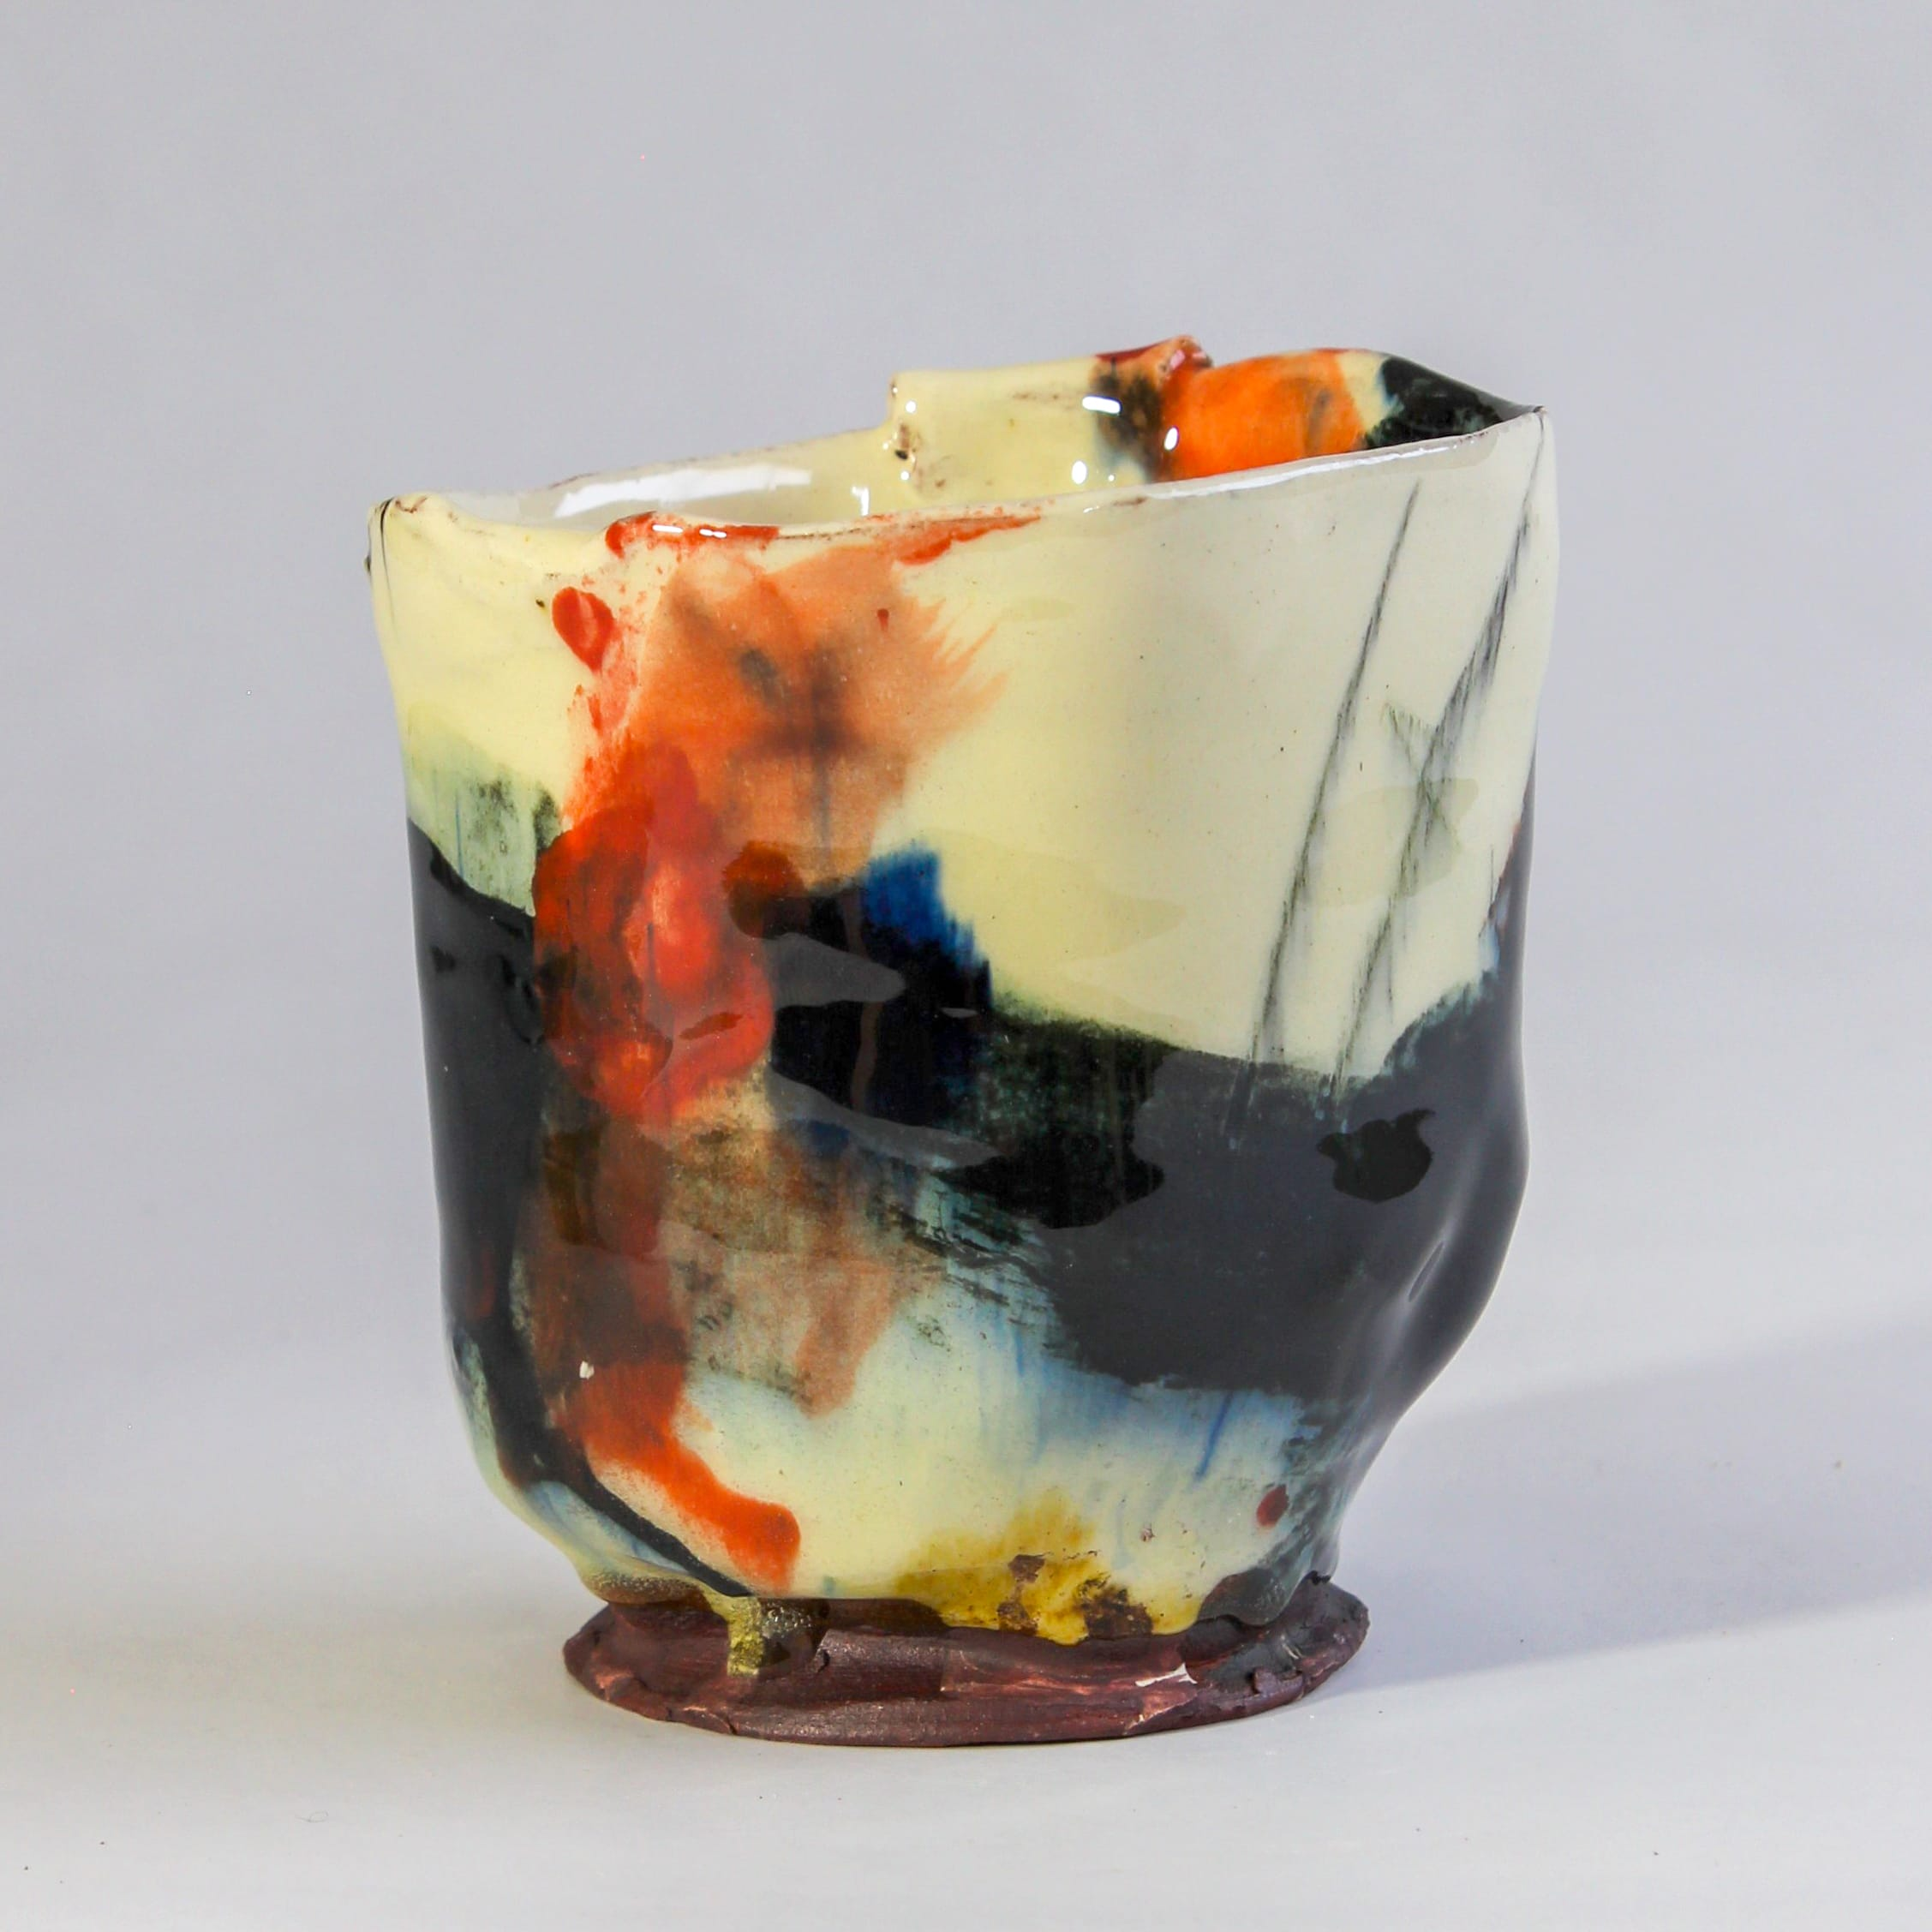 """<span class=""""link fancybox-details-link""""><a href=""""/artists/34-barry-stedman/works/7823-barry-stedman-thrown-altered-vessel-2021/"""">View Detail Page</a></span><div class=""""artist""""><strong>Barry Stedman</strong></div> <div class=""""title""""><em>Thrown altered Vessel </em>, 2021</div> <div class=""""medium"""">thrown and altered earthenware, decorated with slips</div> <div class=""""dimensions"""">11 x 11 cm</div><div class=""""copyright_line"""">Own Art: £10.50 x 10 Months, 0% APR</div>"""